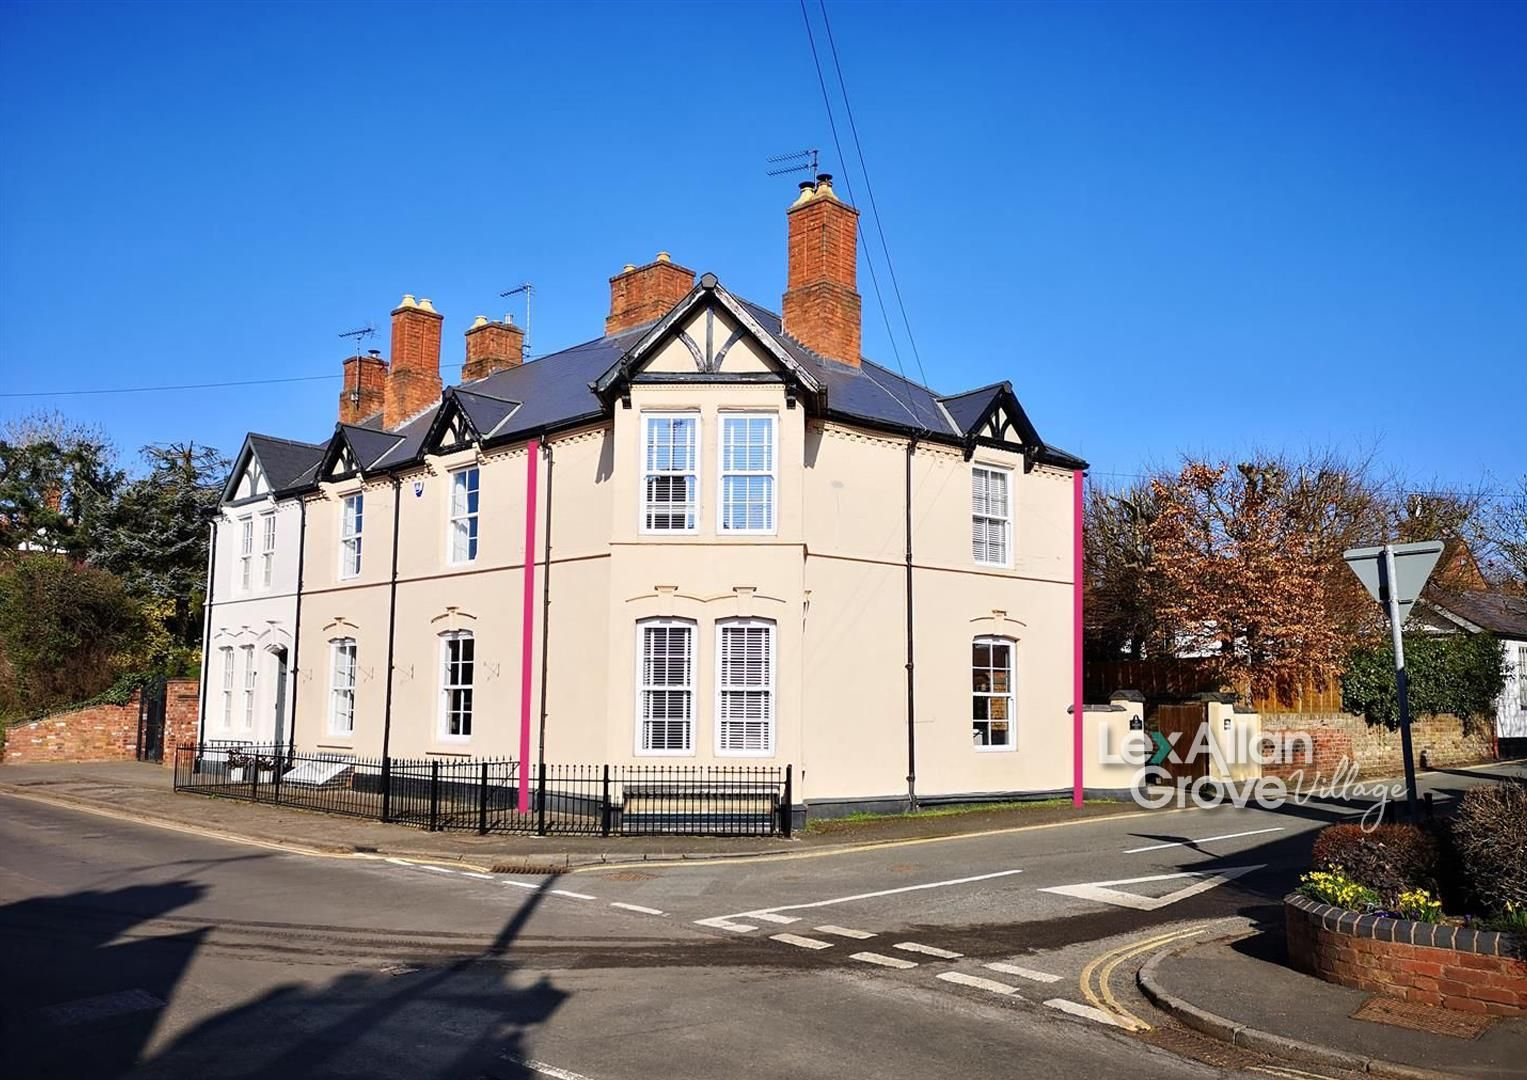 3 bed semi-detached for sale in Clent, DY9